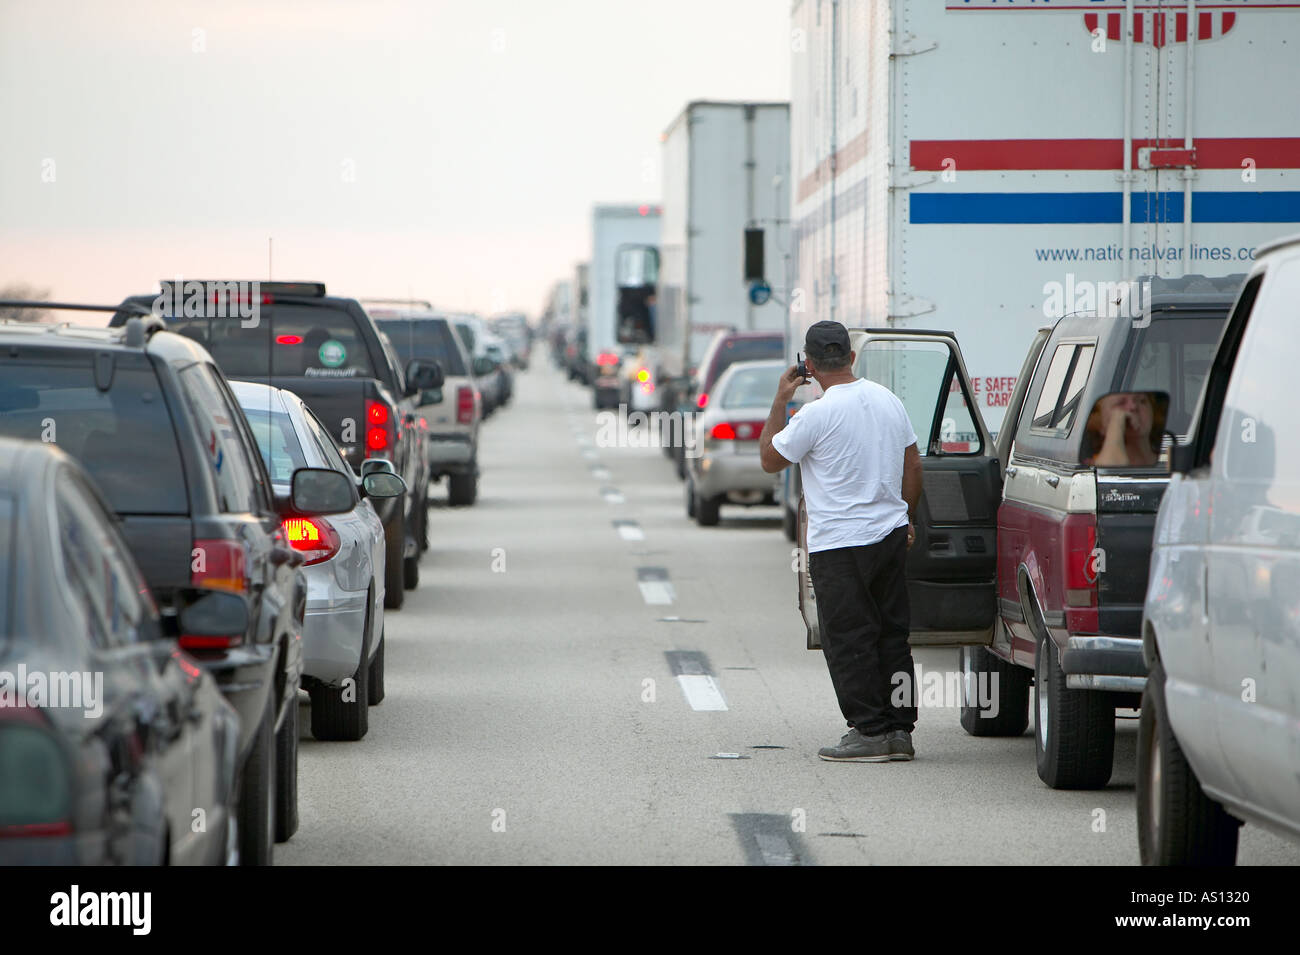 Man on cell phone looks down row of cars and trucks stopped in a traffic jam on Alligator Alley Florida Everglades - Stock Photo